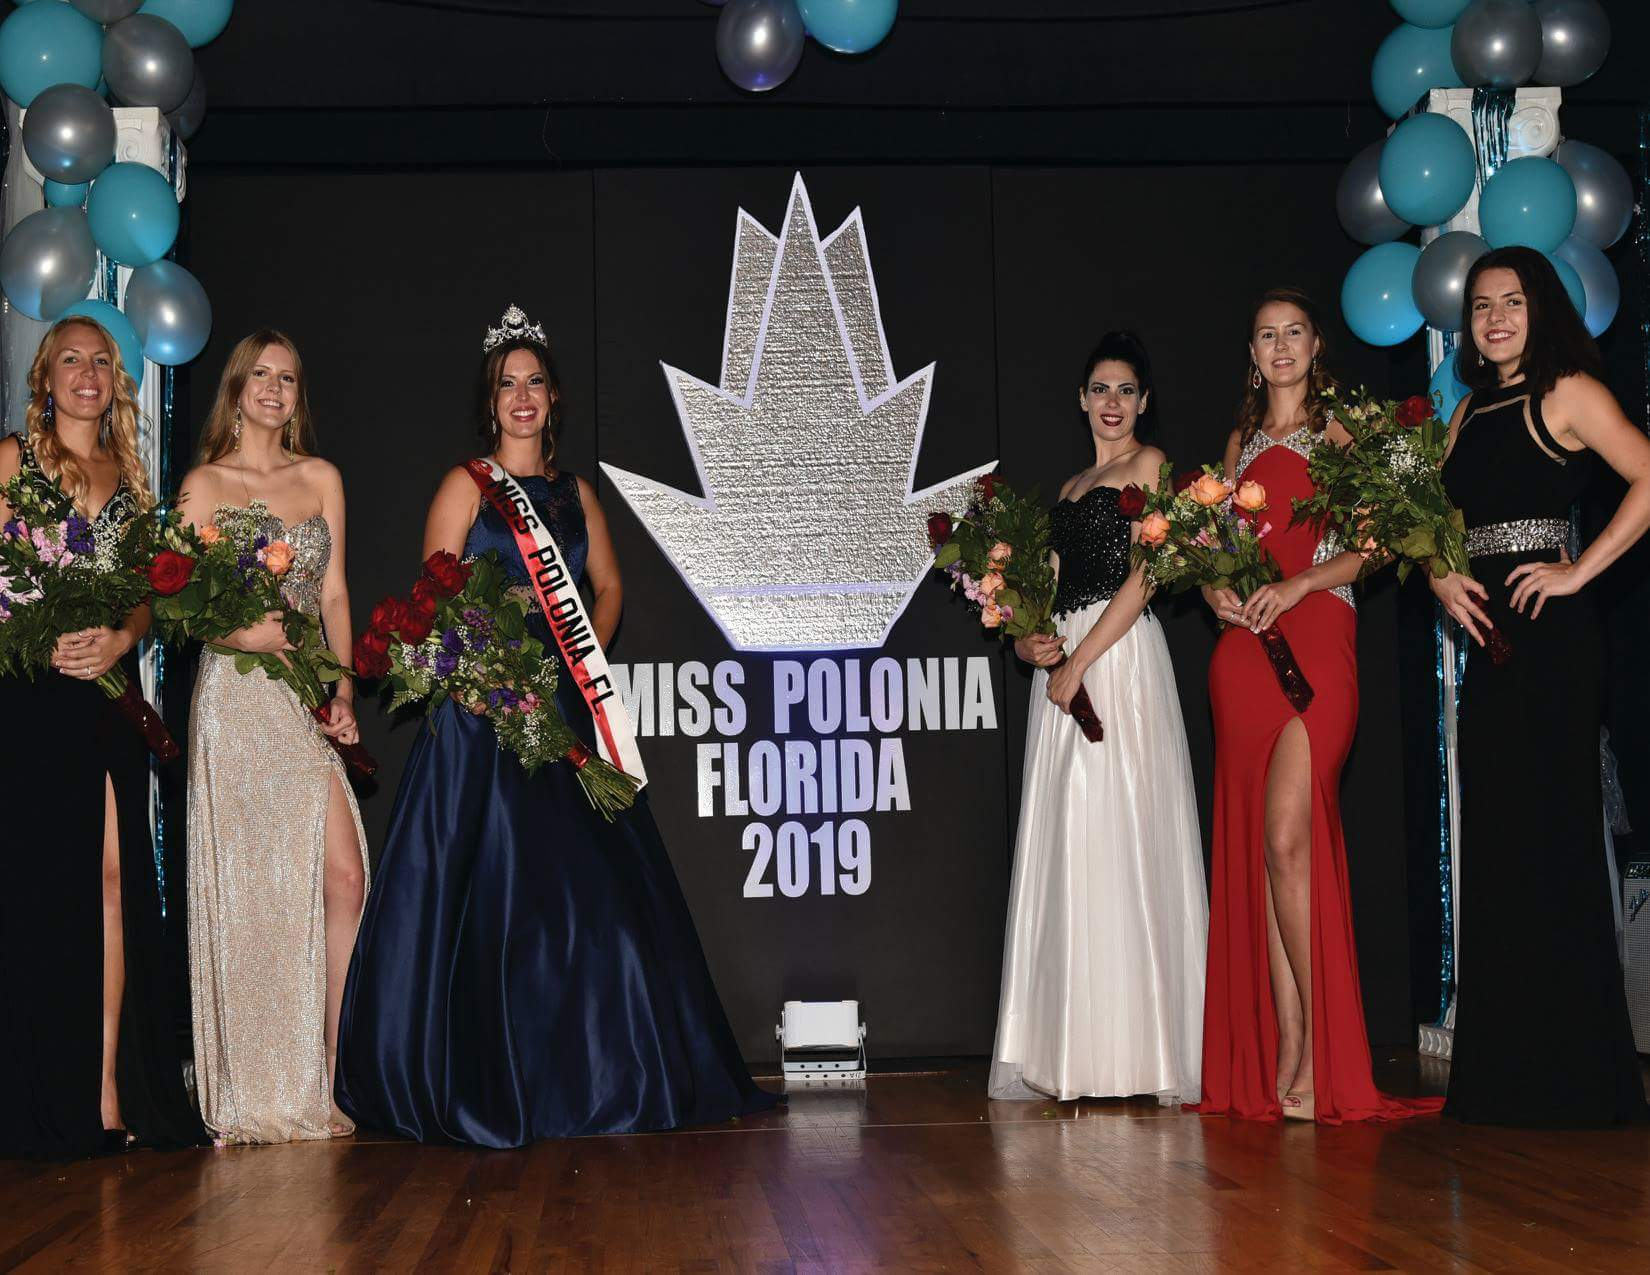 Congratulation to all contestants competing in this pageant and title holder, Olivia Kisielewski, Miss Polonia Florida 2019